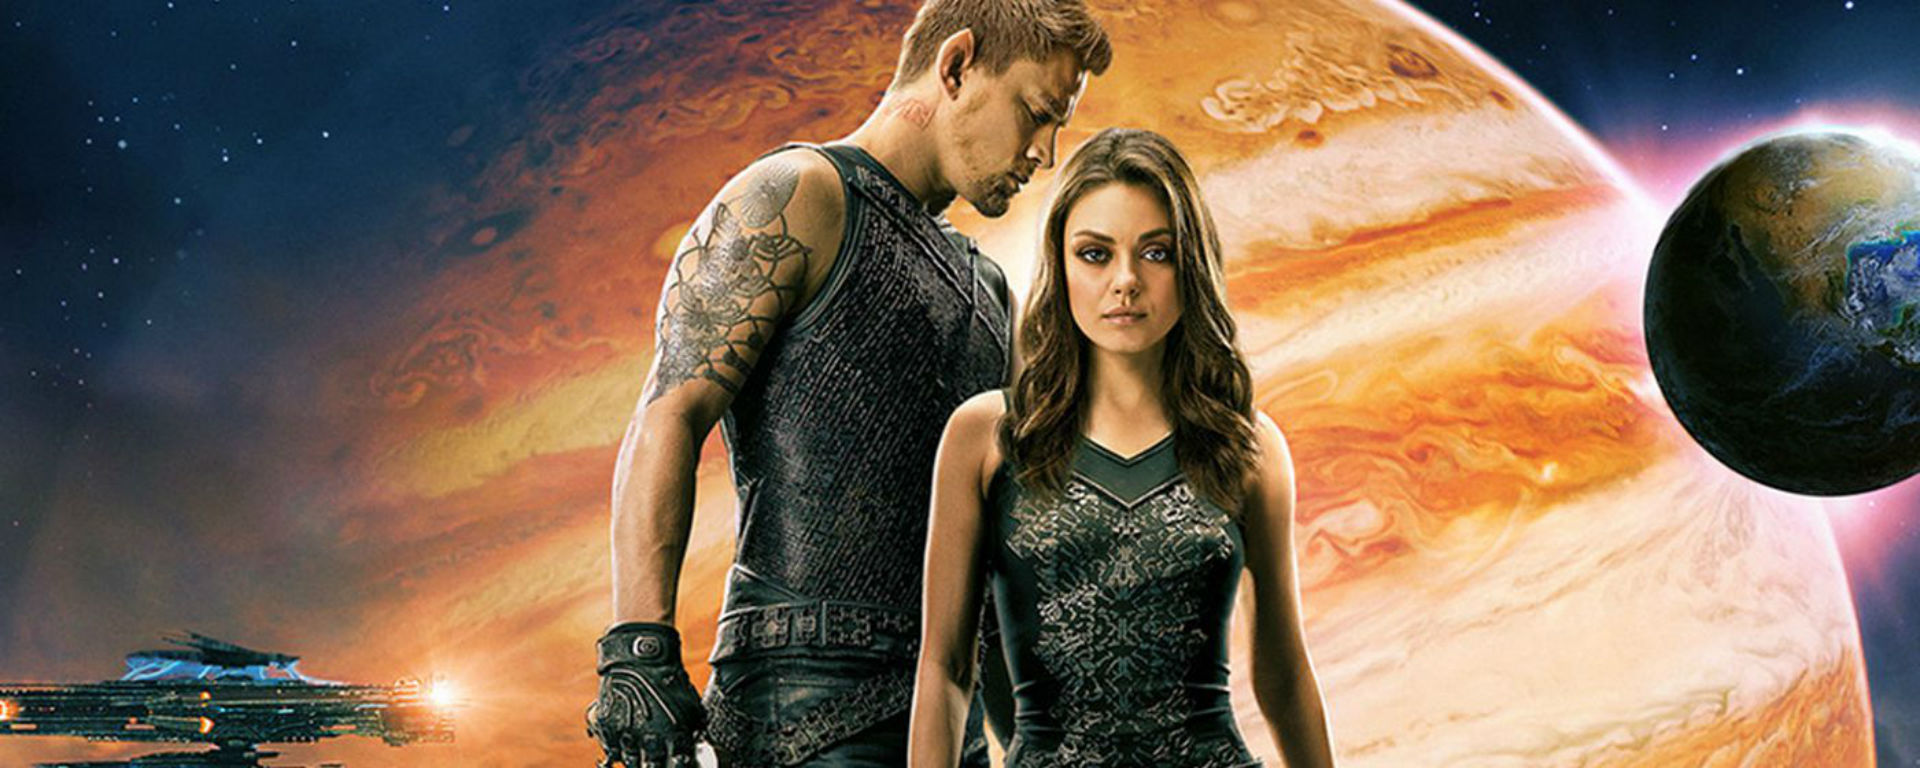 jupiter ascending movie review feature image